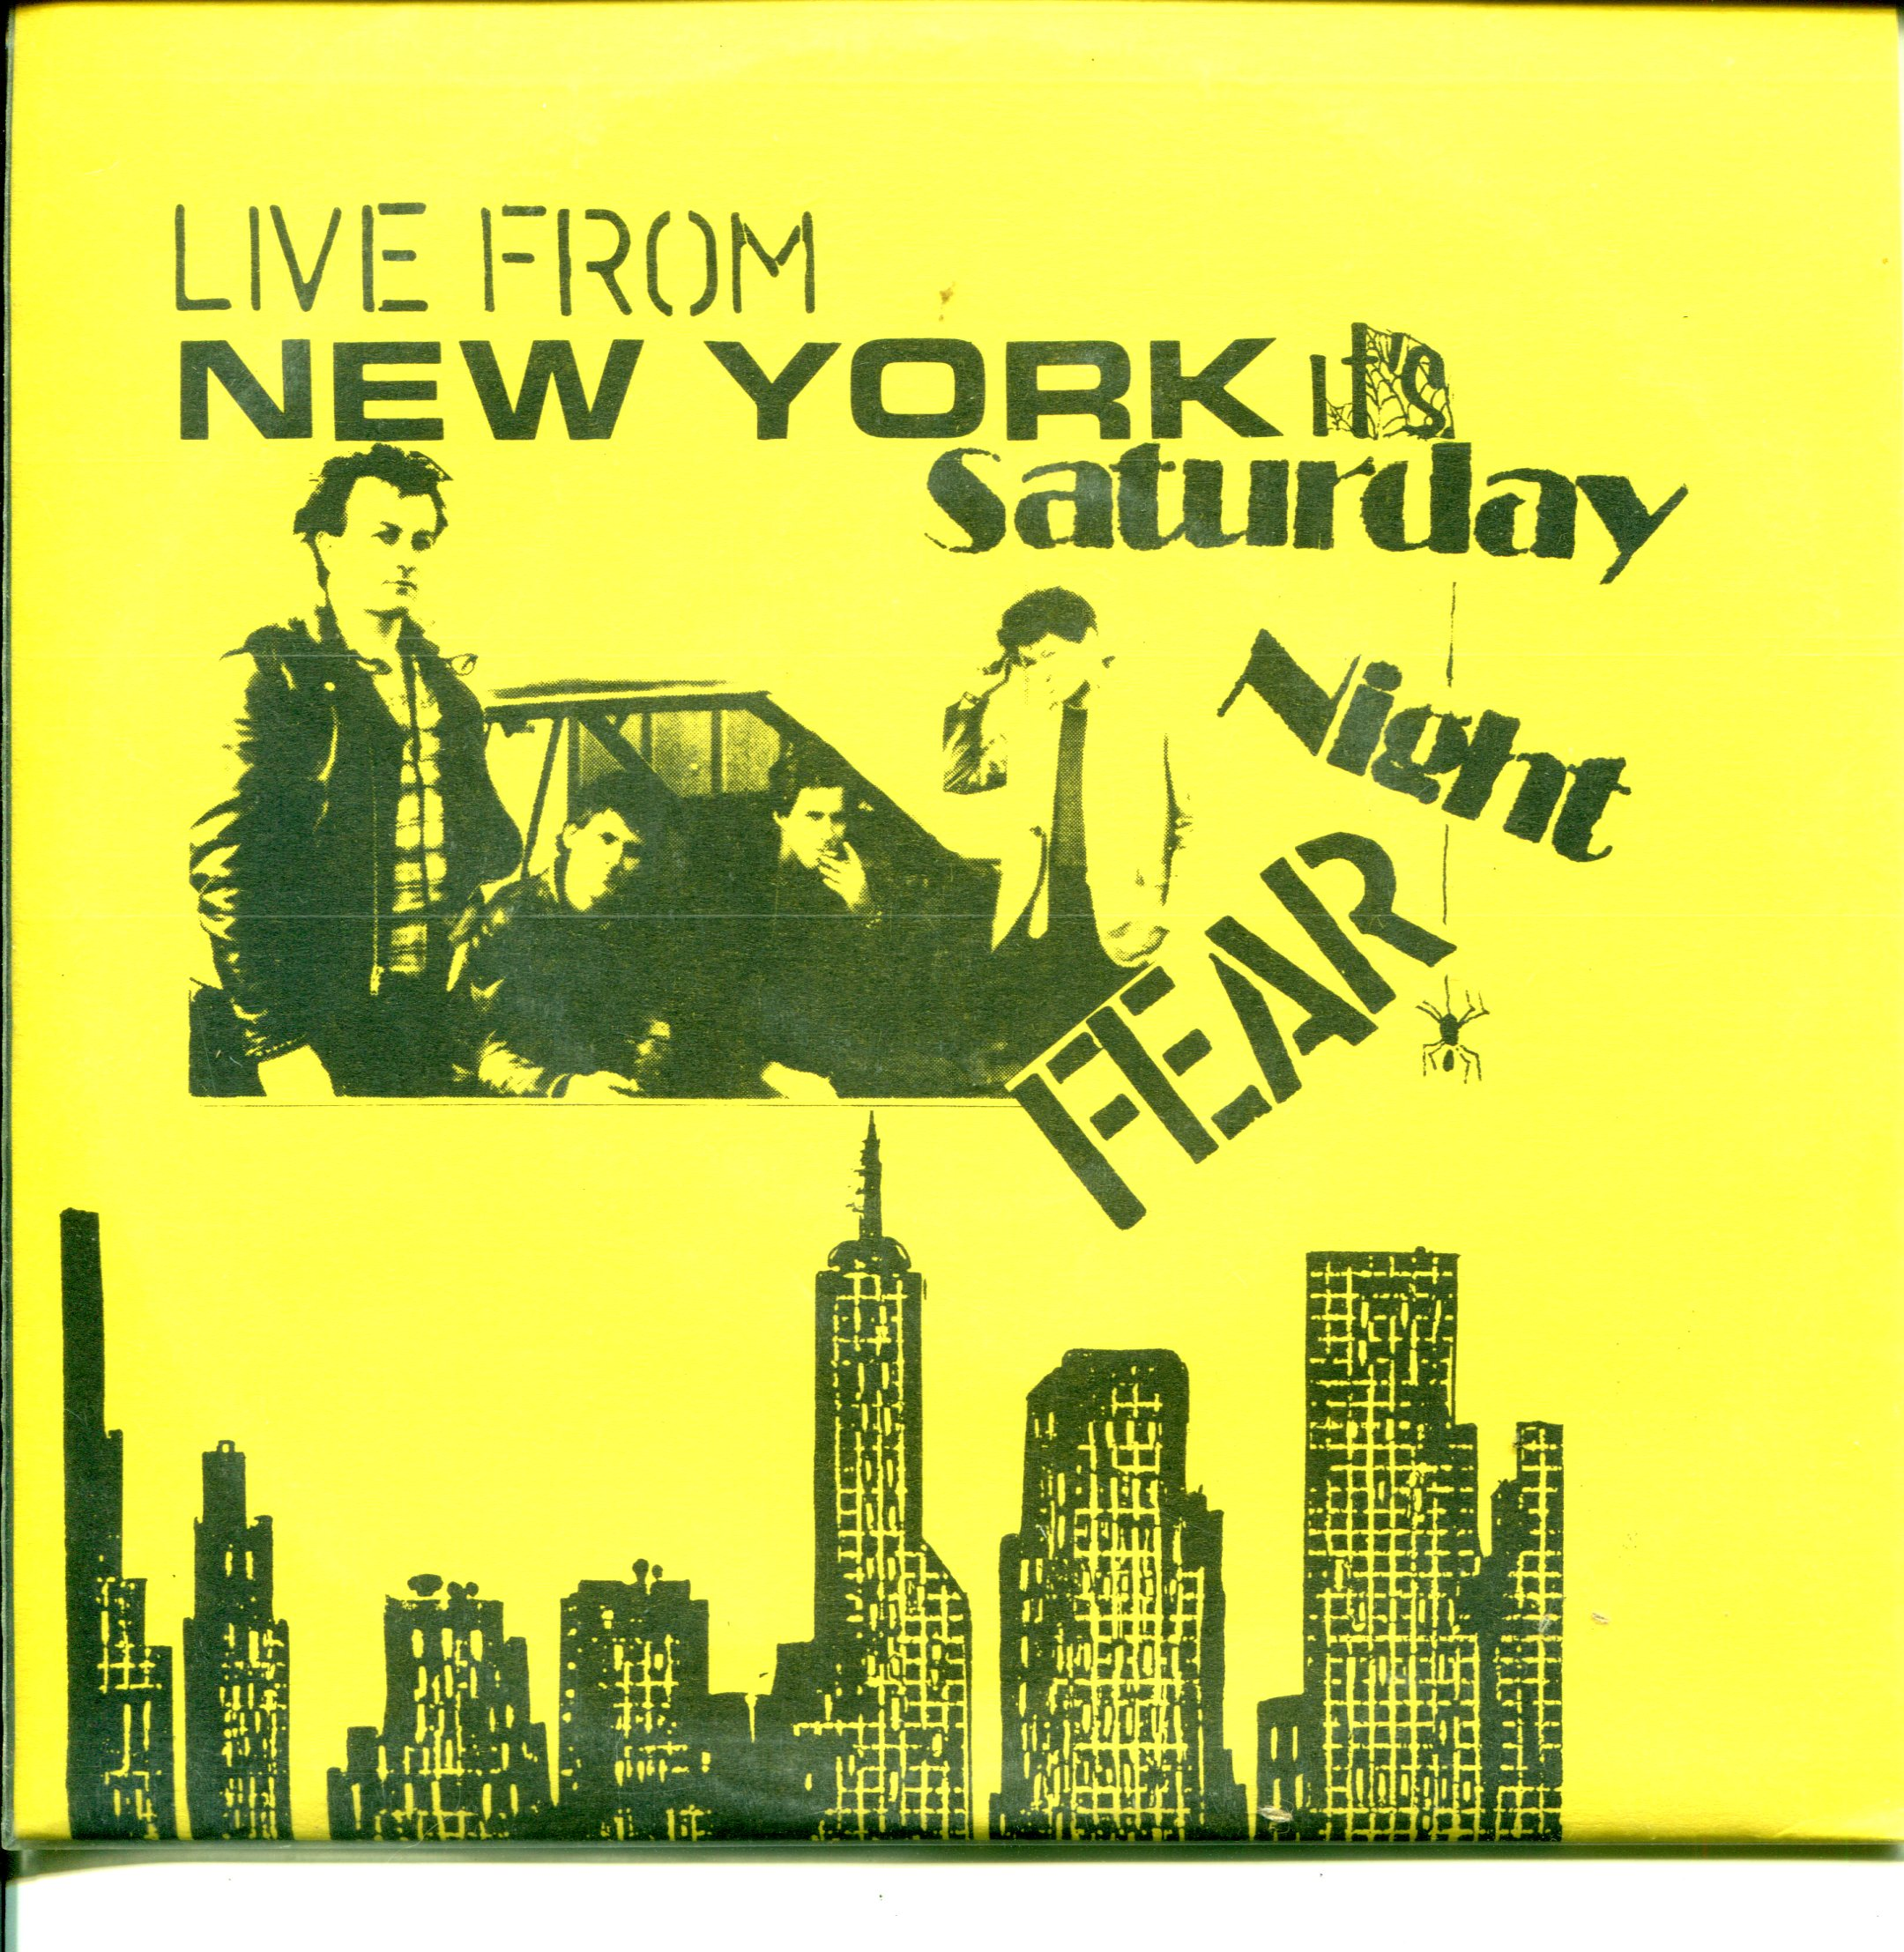 Live From New York It's Saturday Night FEAR